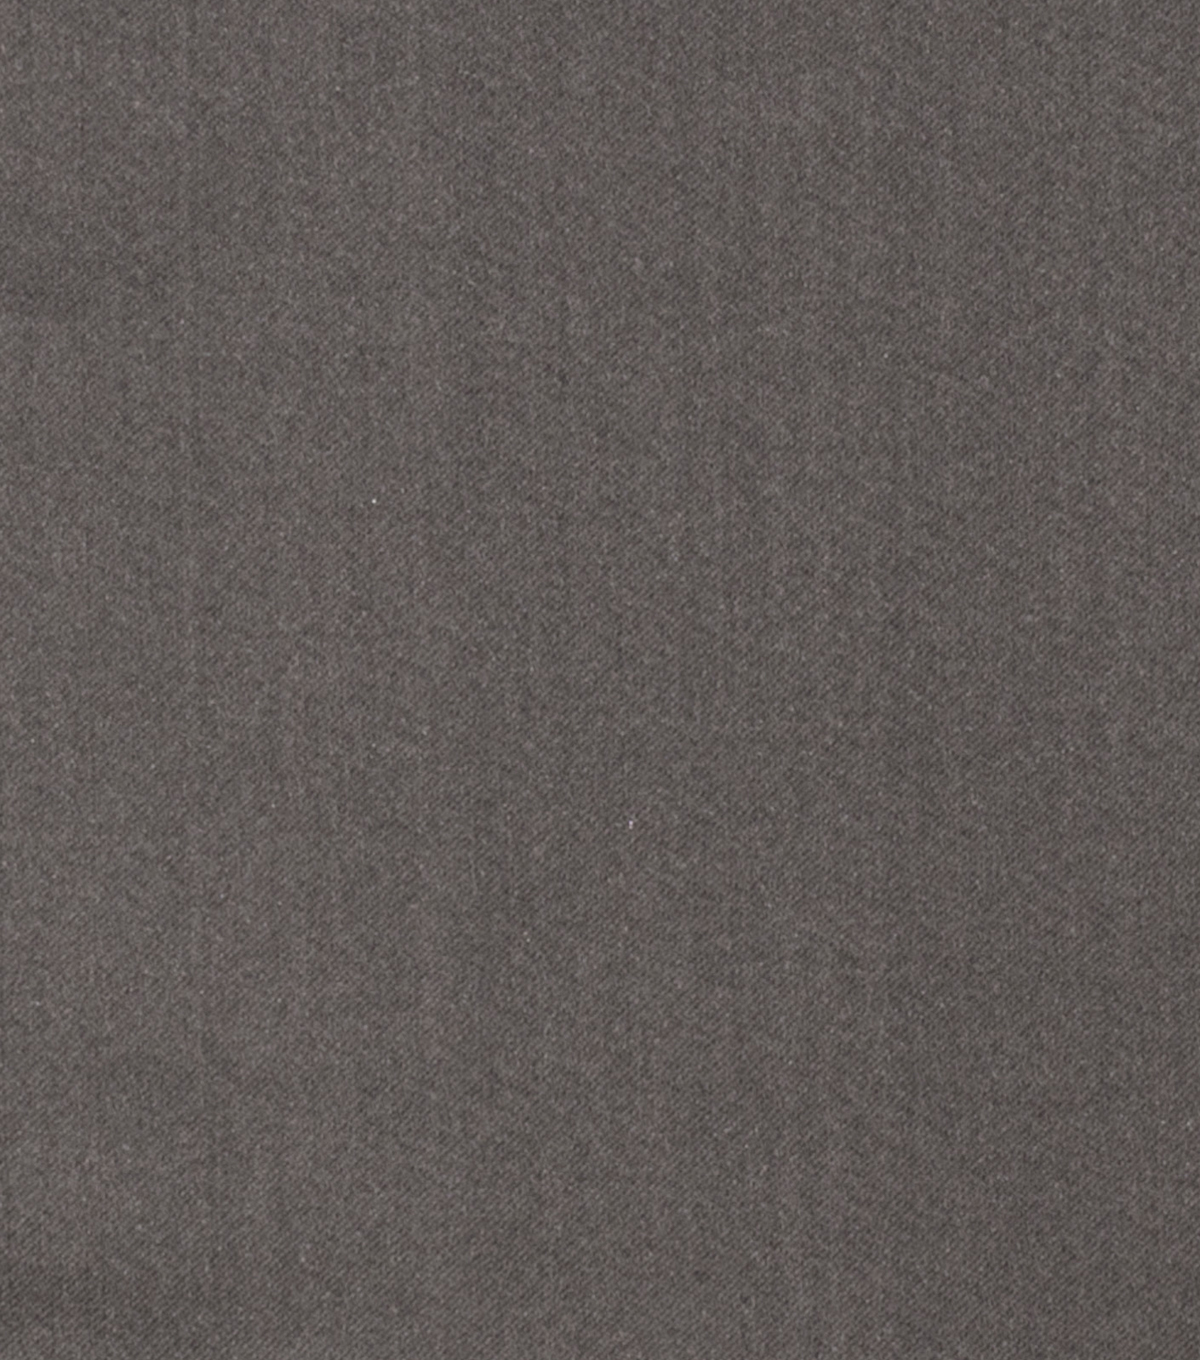 "Home Decor 8""x8"" Fabric Swatch-Signature Series Couture Satin Pewter"